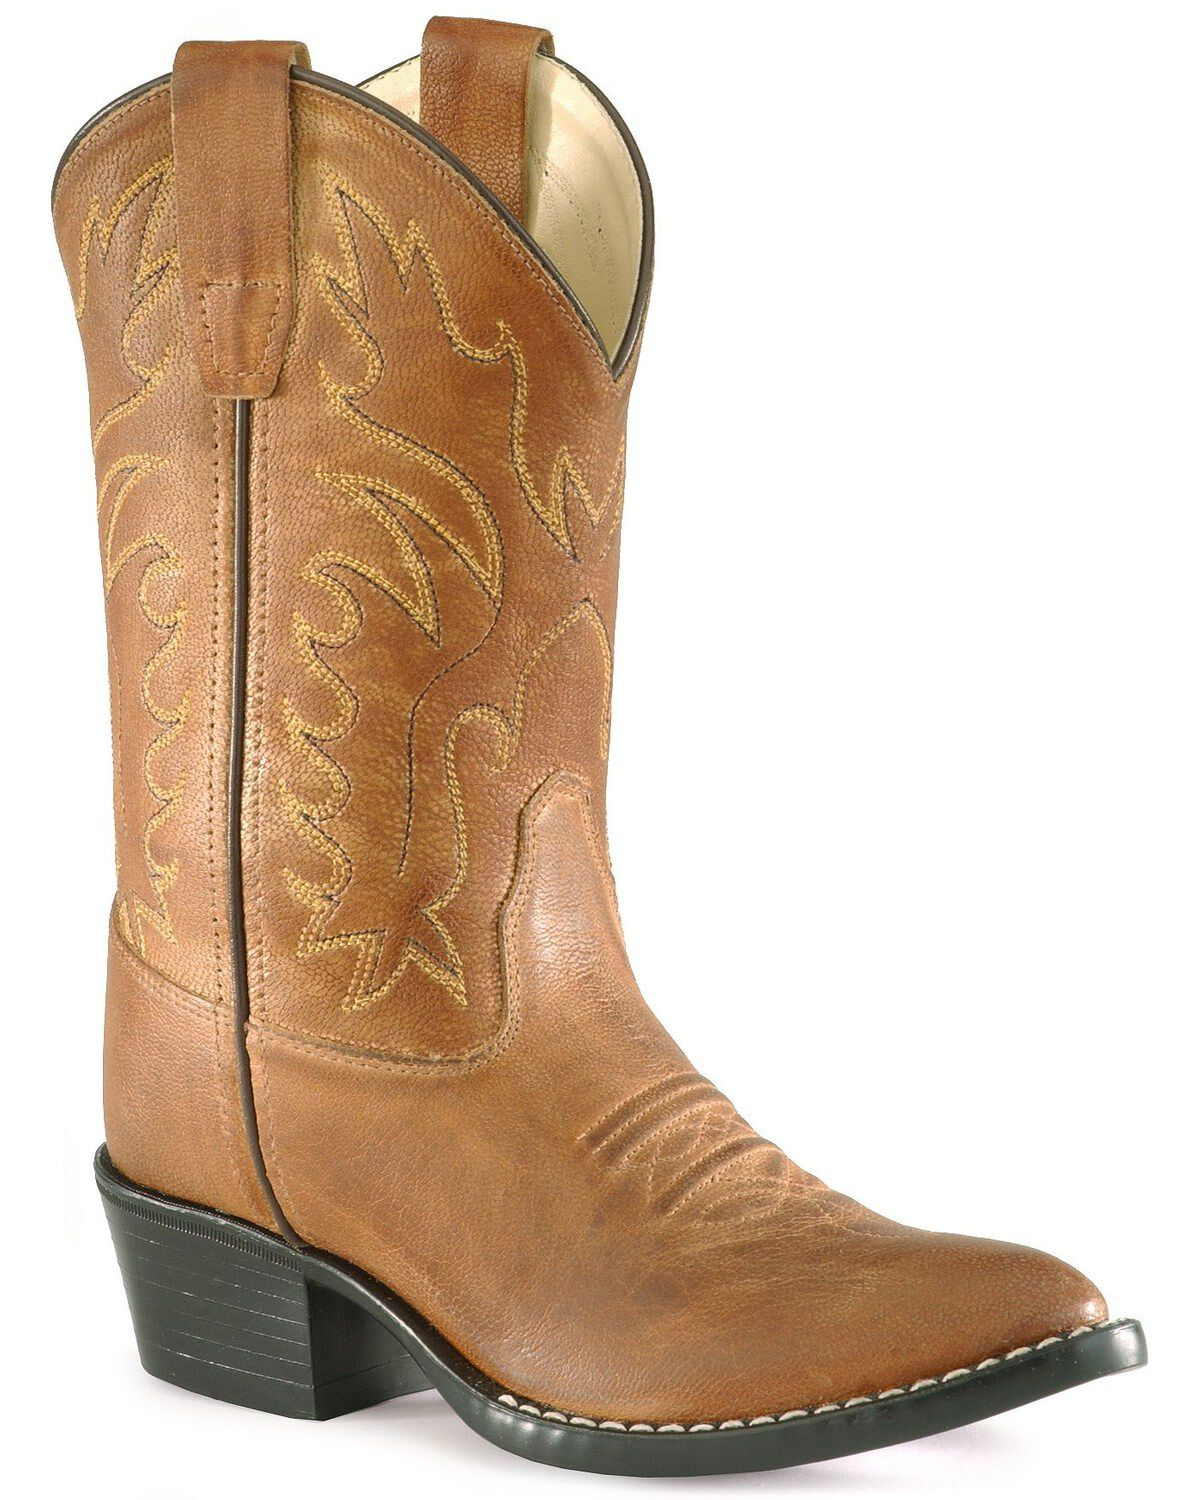 Old West Orange//Brown Childrens Boys Leather Western Cowboy Boots